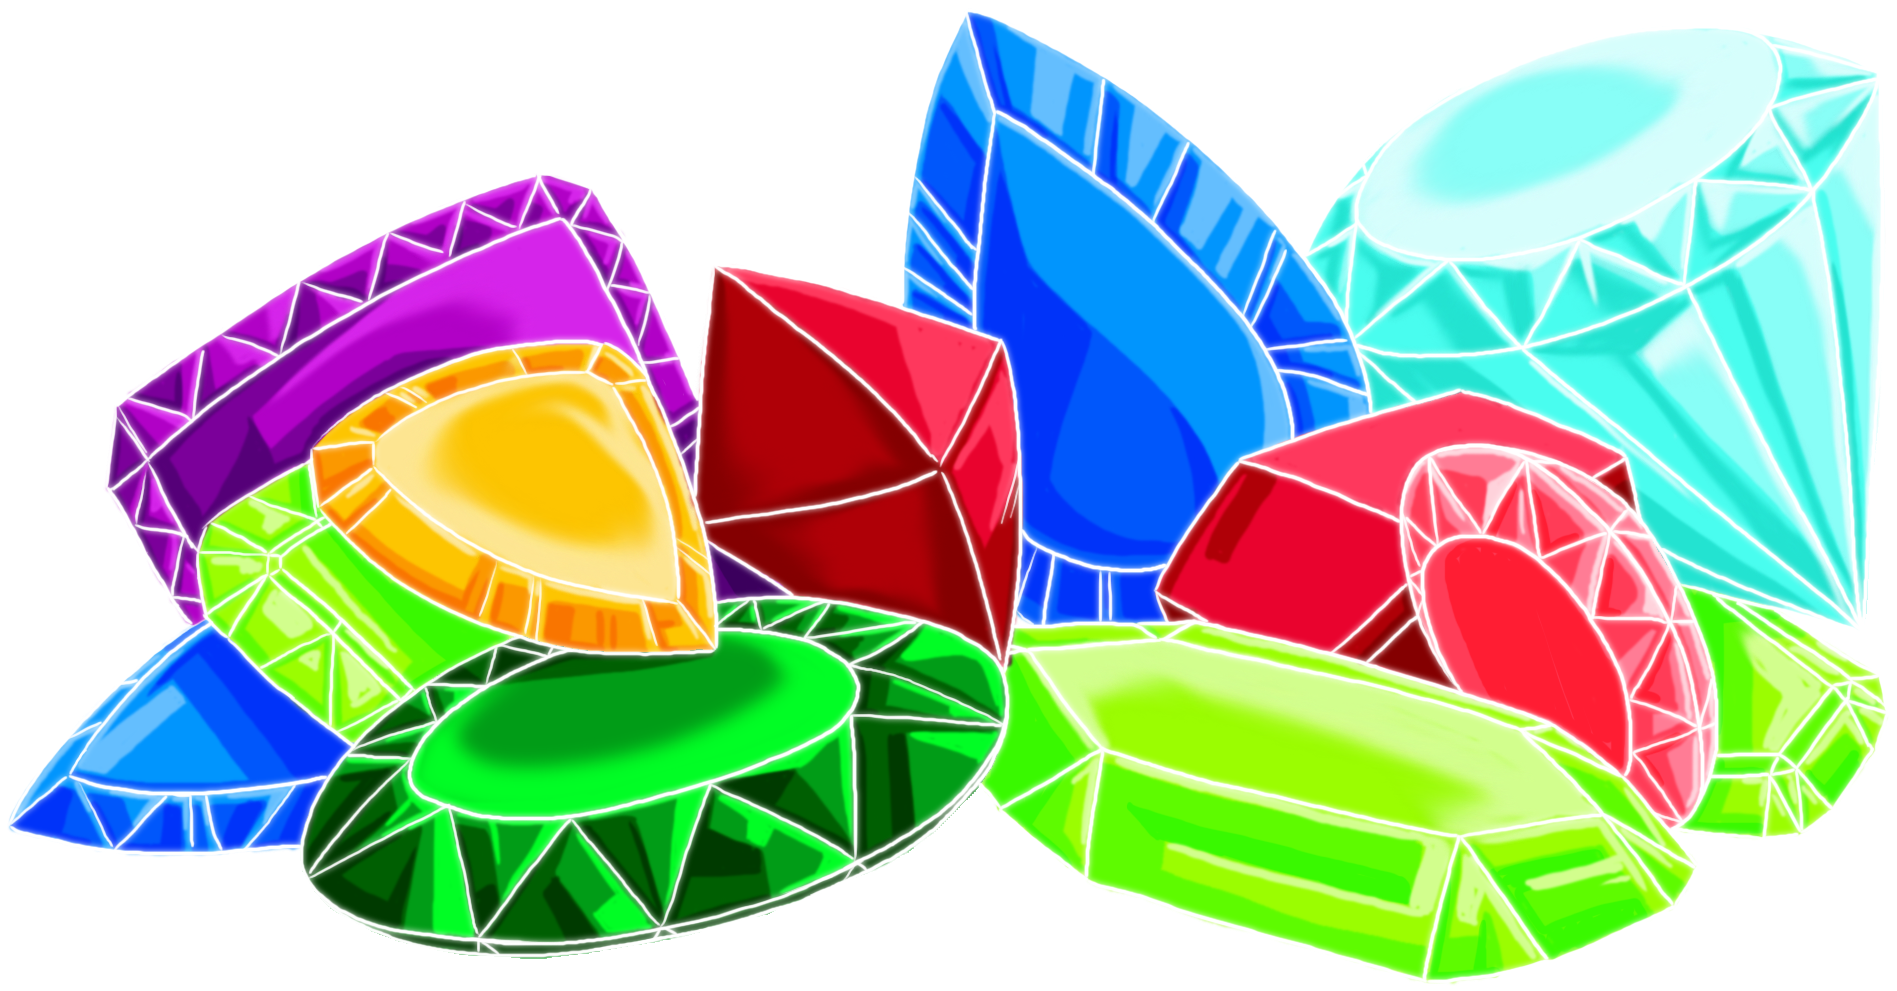 Gem clipart colorful thing. Gemstone pile of gems